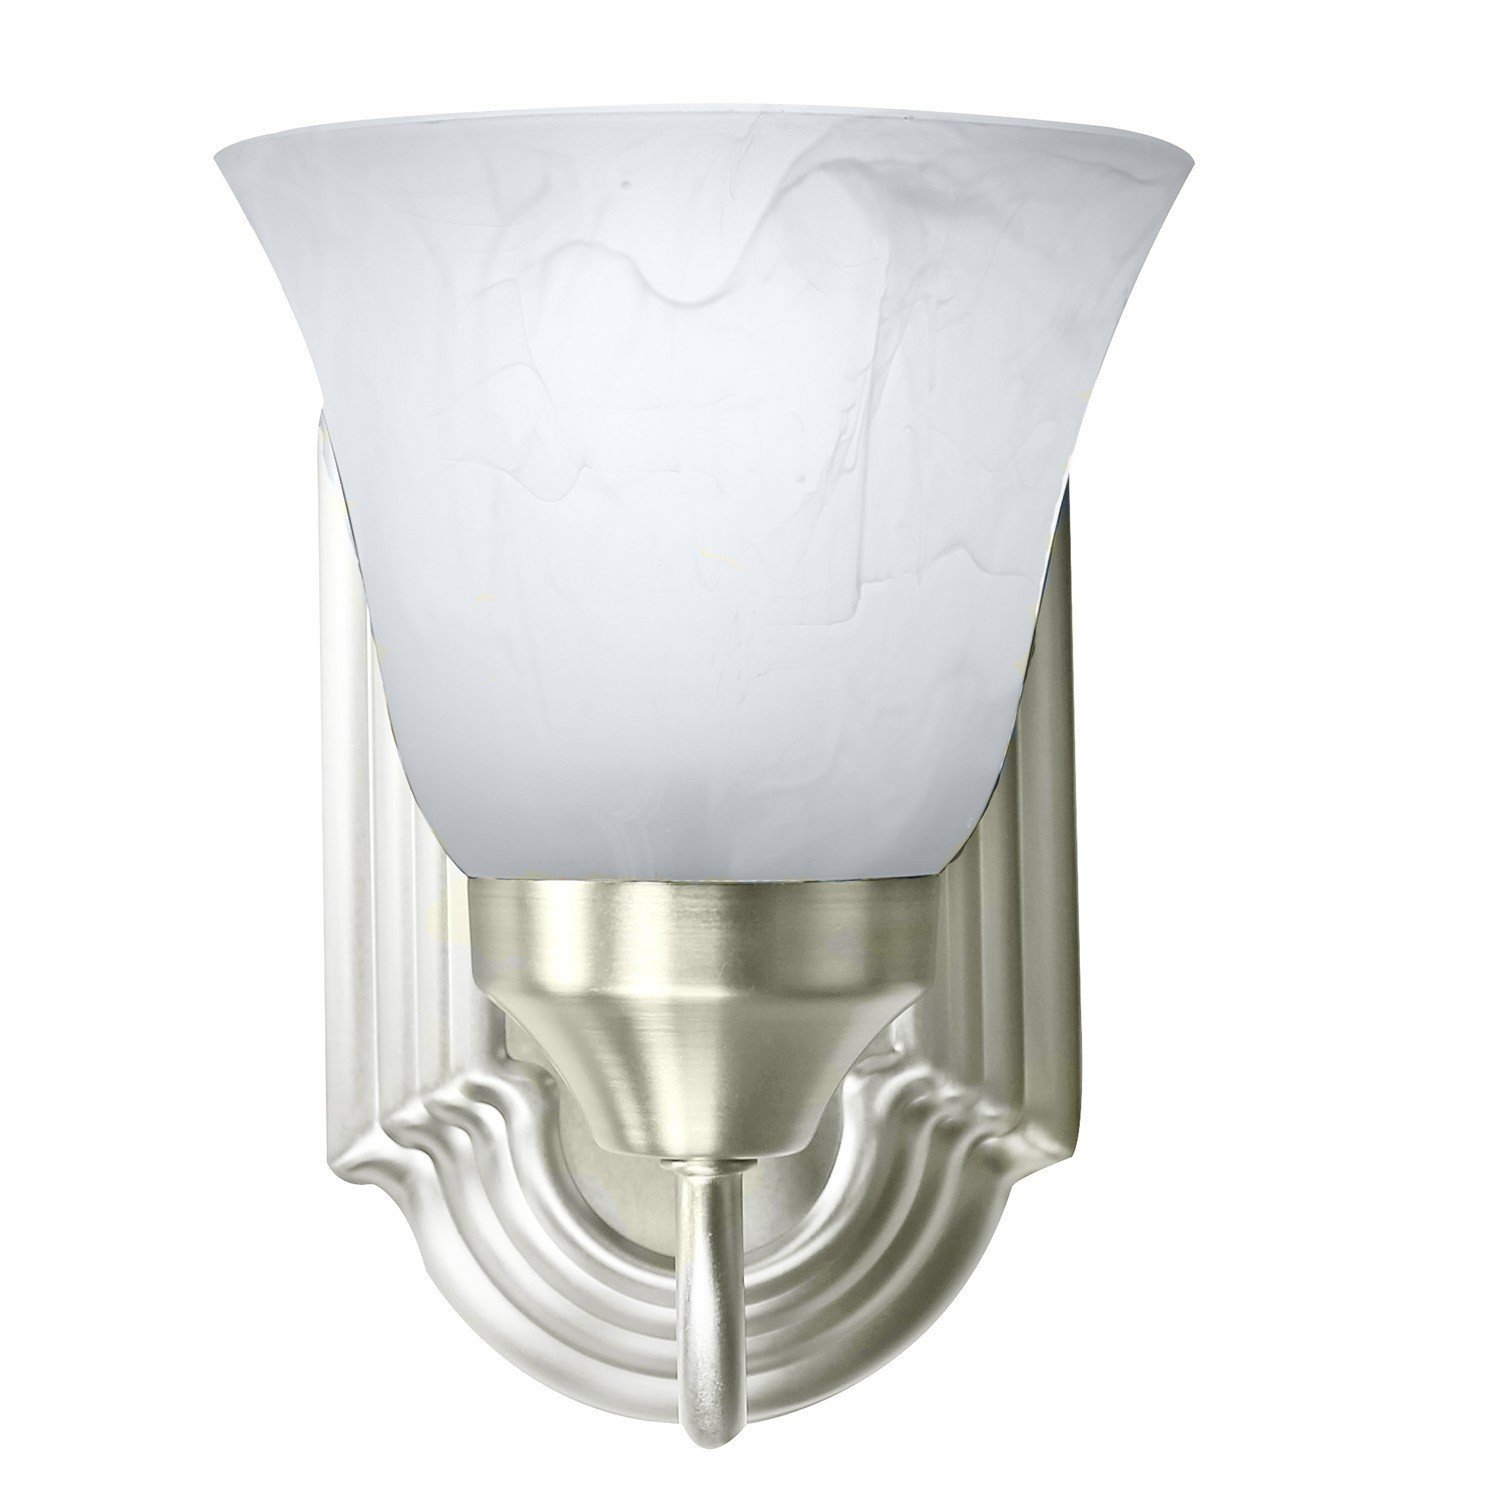 Click here to buy Bennington Luna Wall Sconce Light Fixture Single Light Vanity, Brushed Nickel.